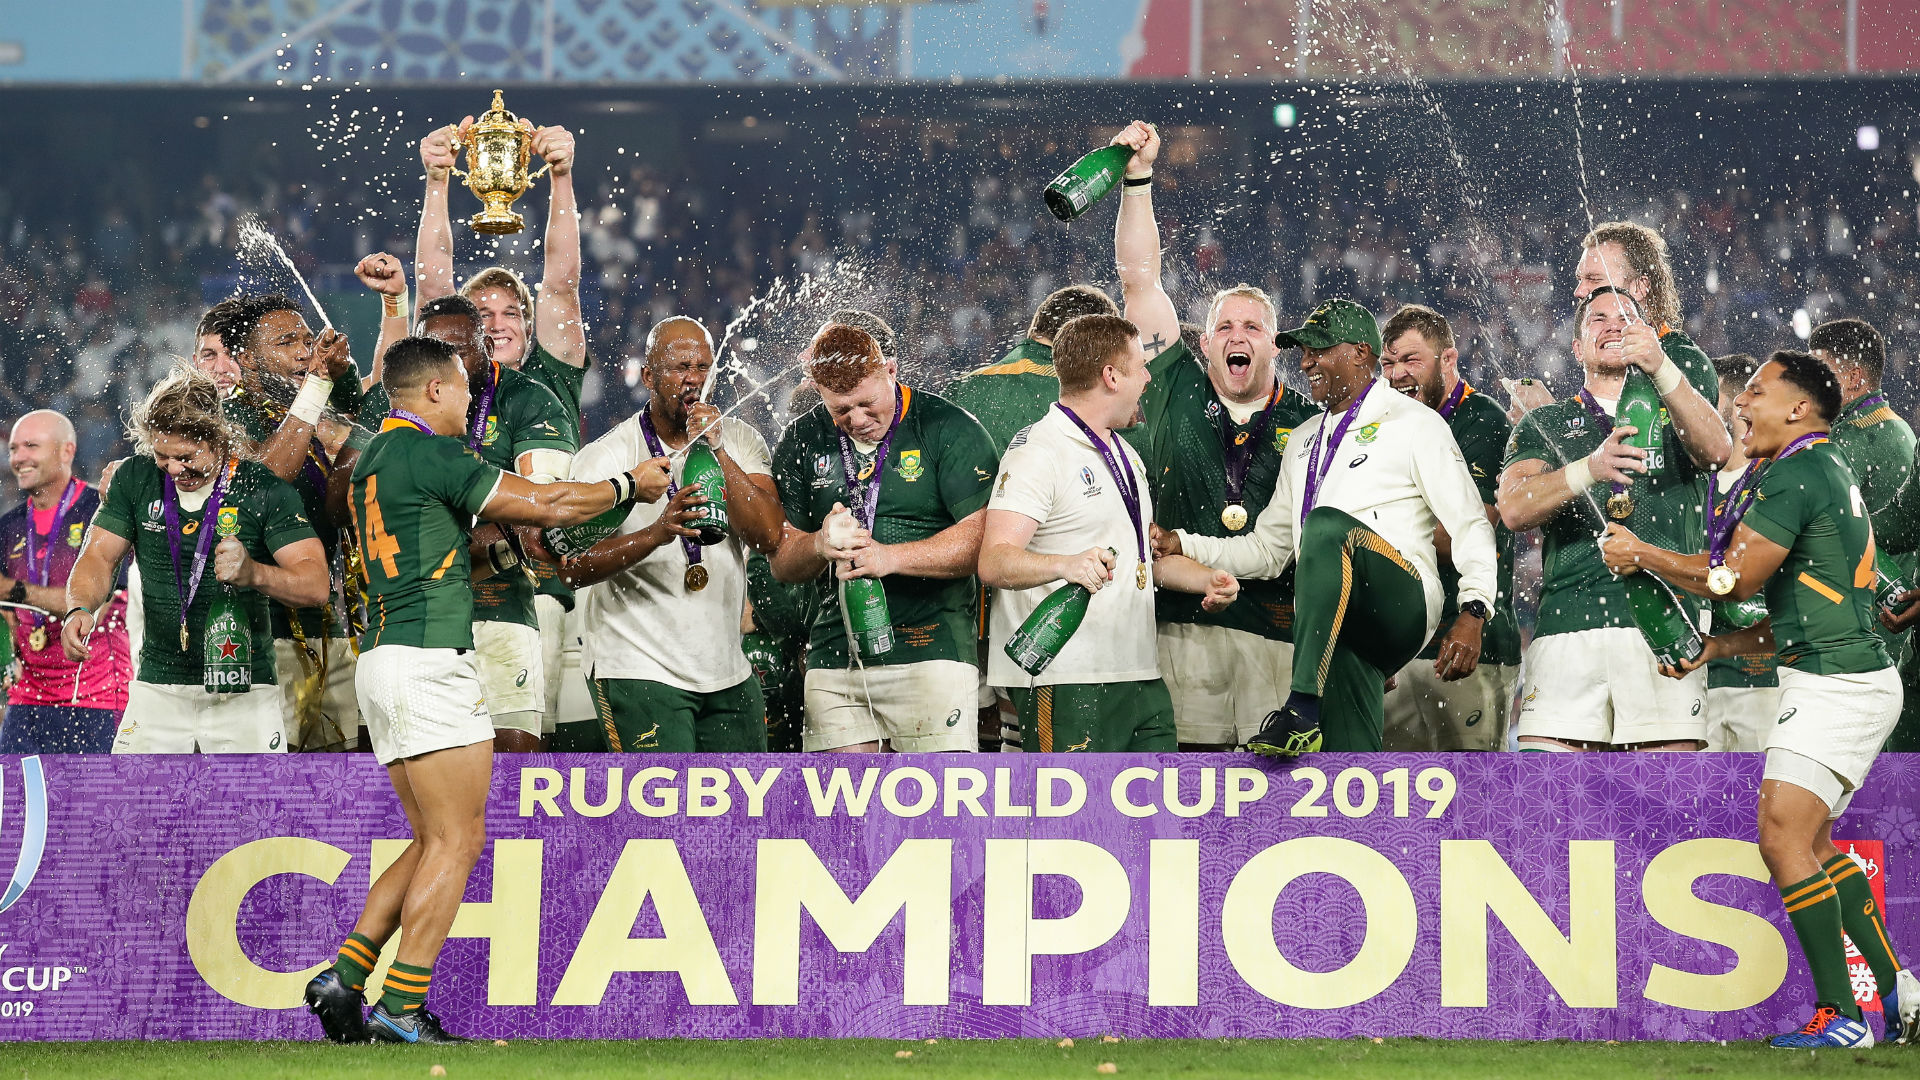 Rugby World Cup 2019: Clinical Springboks, happy hosts, Irish de ja vu – the top Opta facts